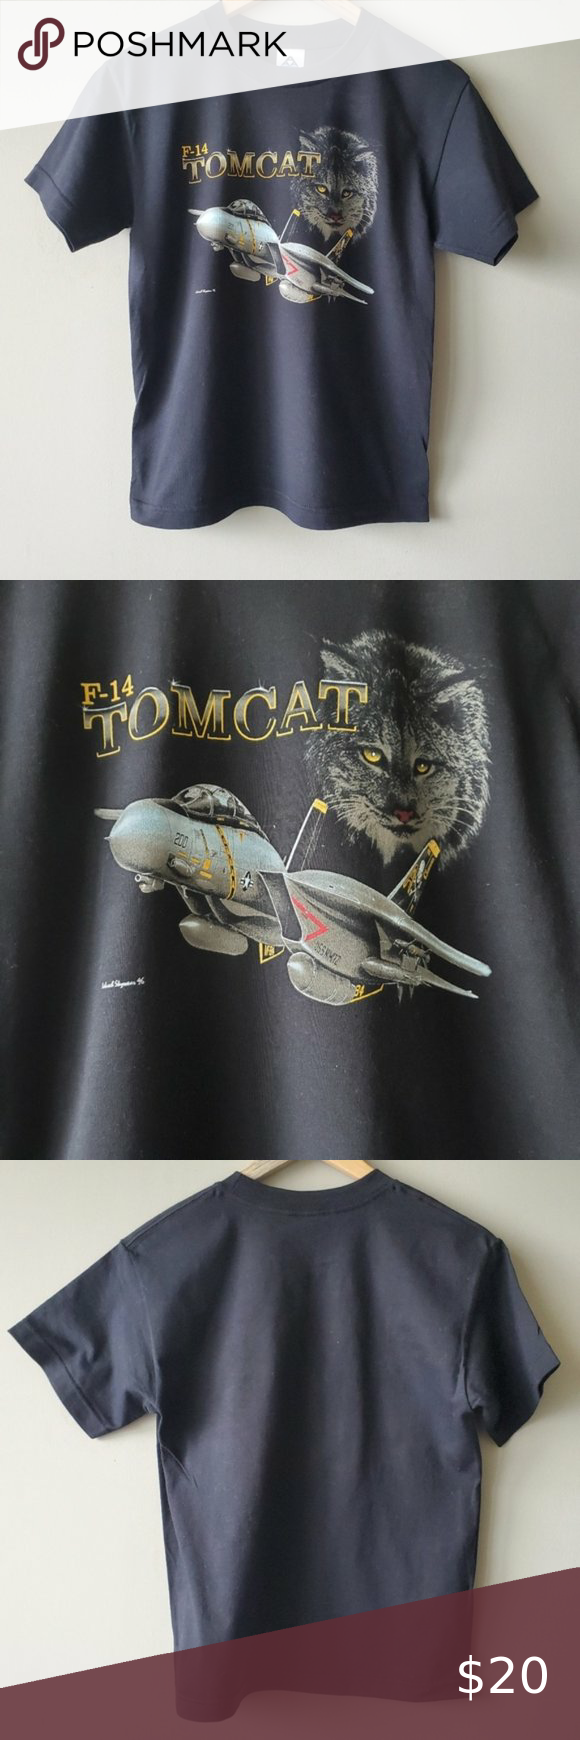 Alstyle Apparel Activewear Black Graphic Tee 100 Cotton Graphic F 14 Tomcat Graphic Of Plane See Last In 2020 Black Graphic Tees Alstyle Apparel Active Wear